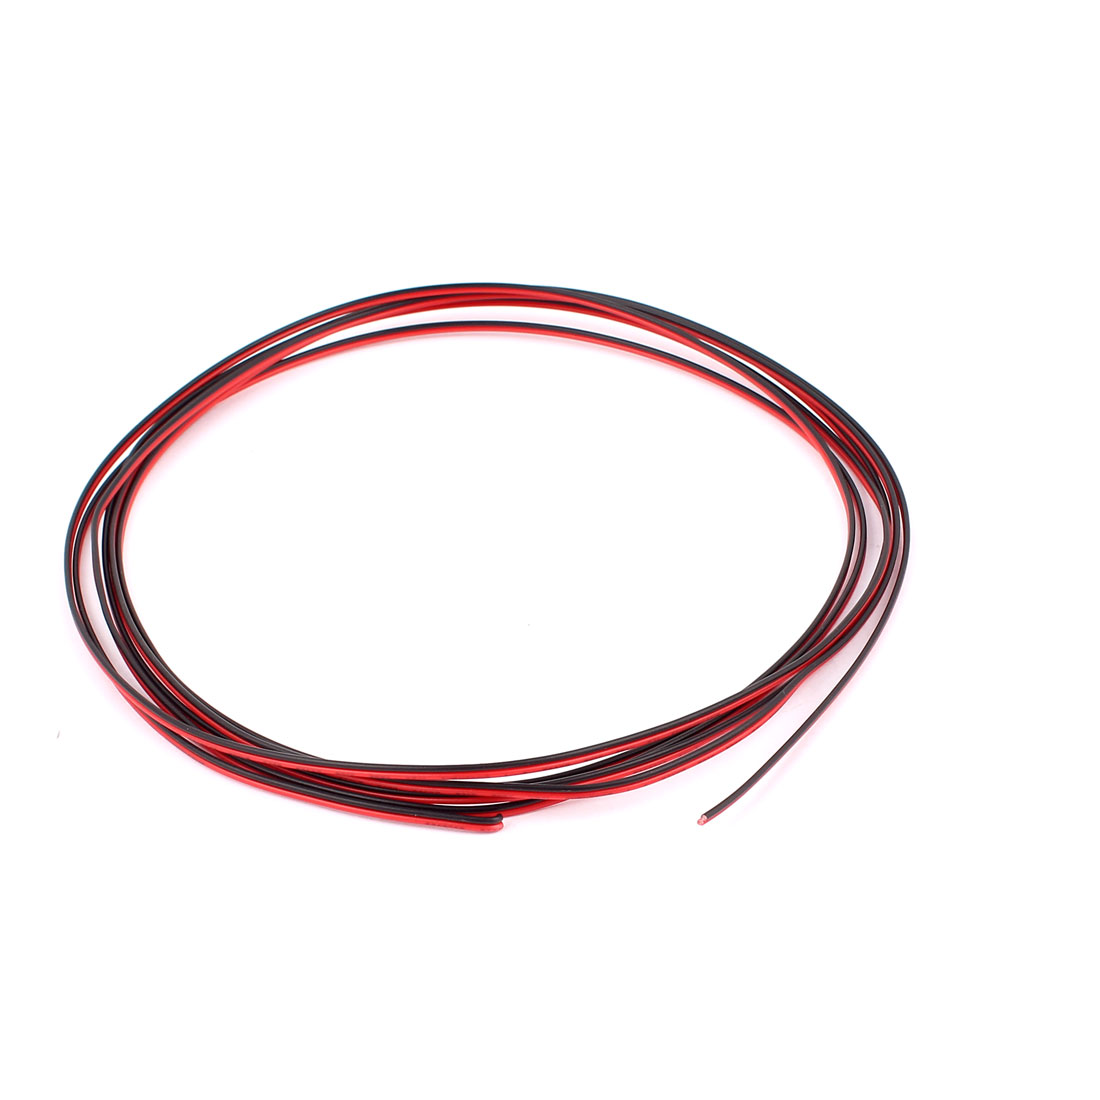 24AWG Indoor Outdoor PVC Insulated Electrical Wire Cable Black Red 3 Meters